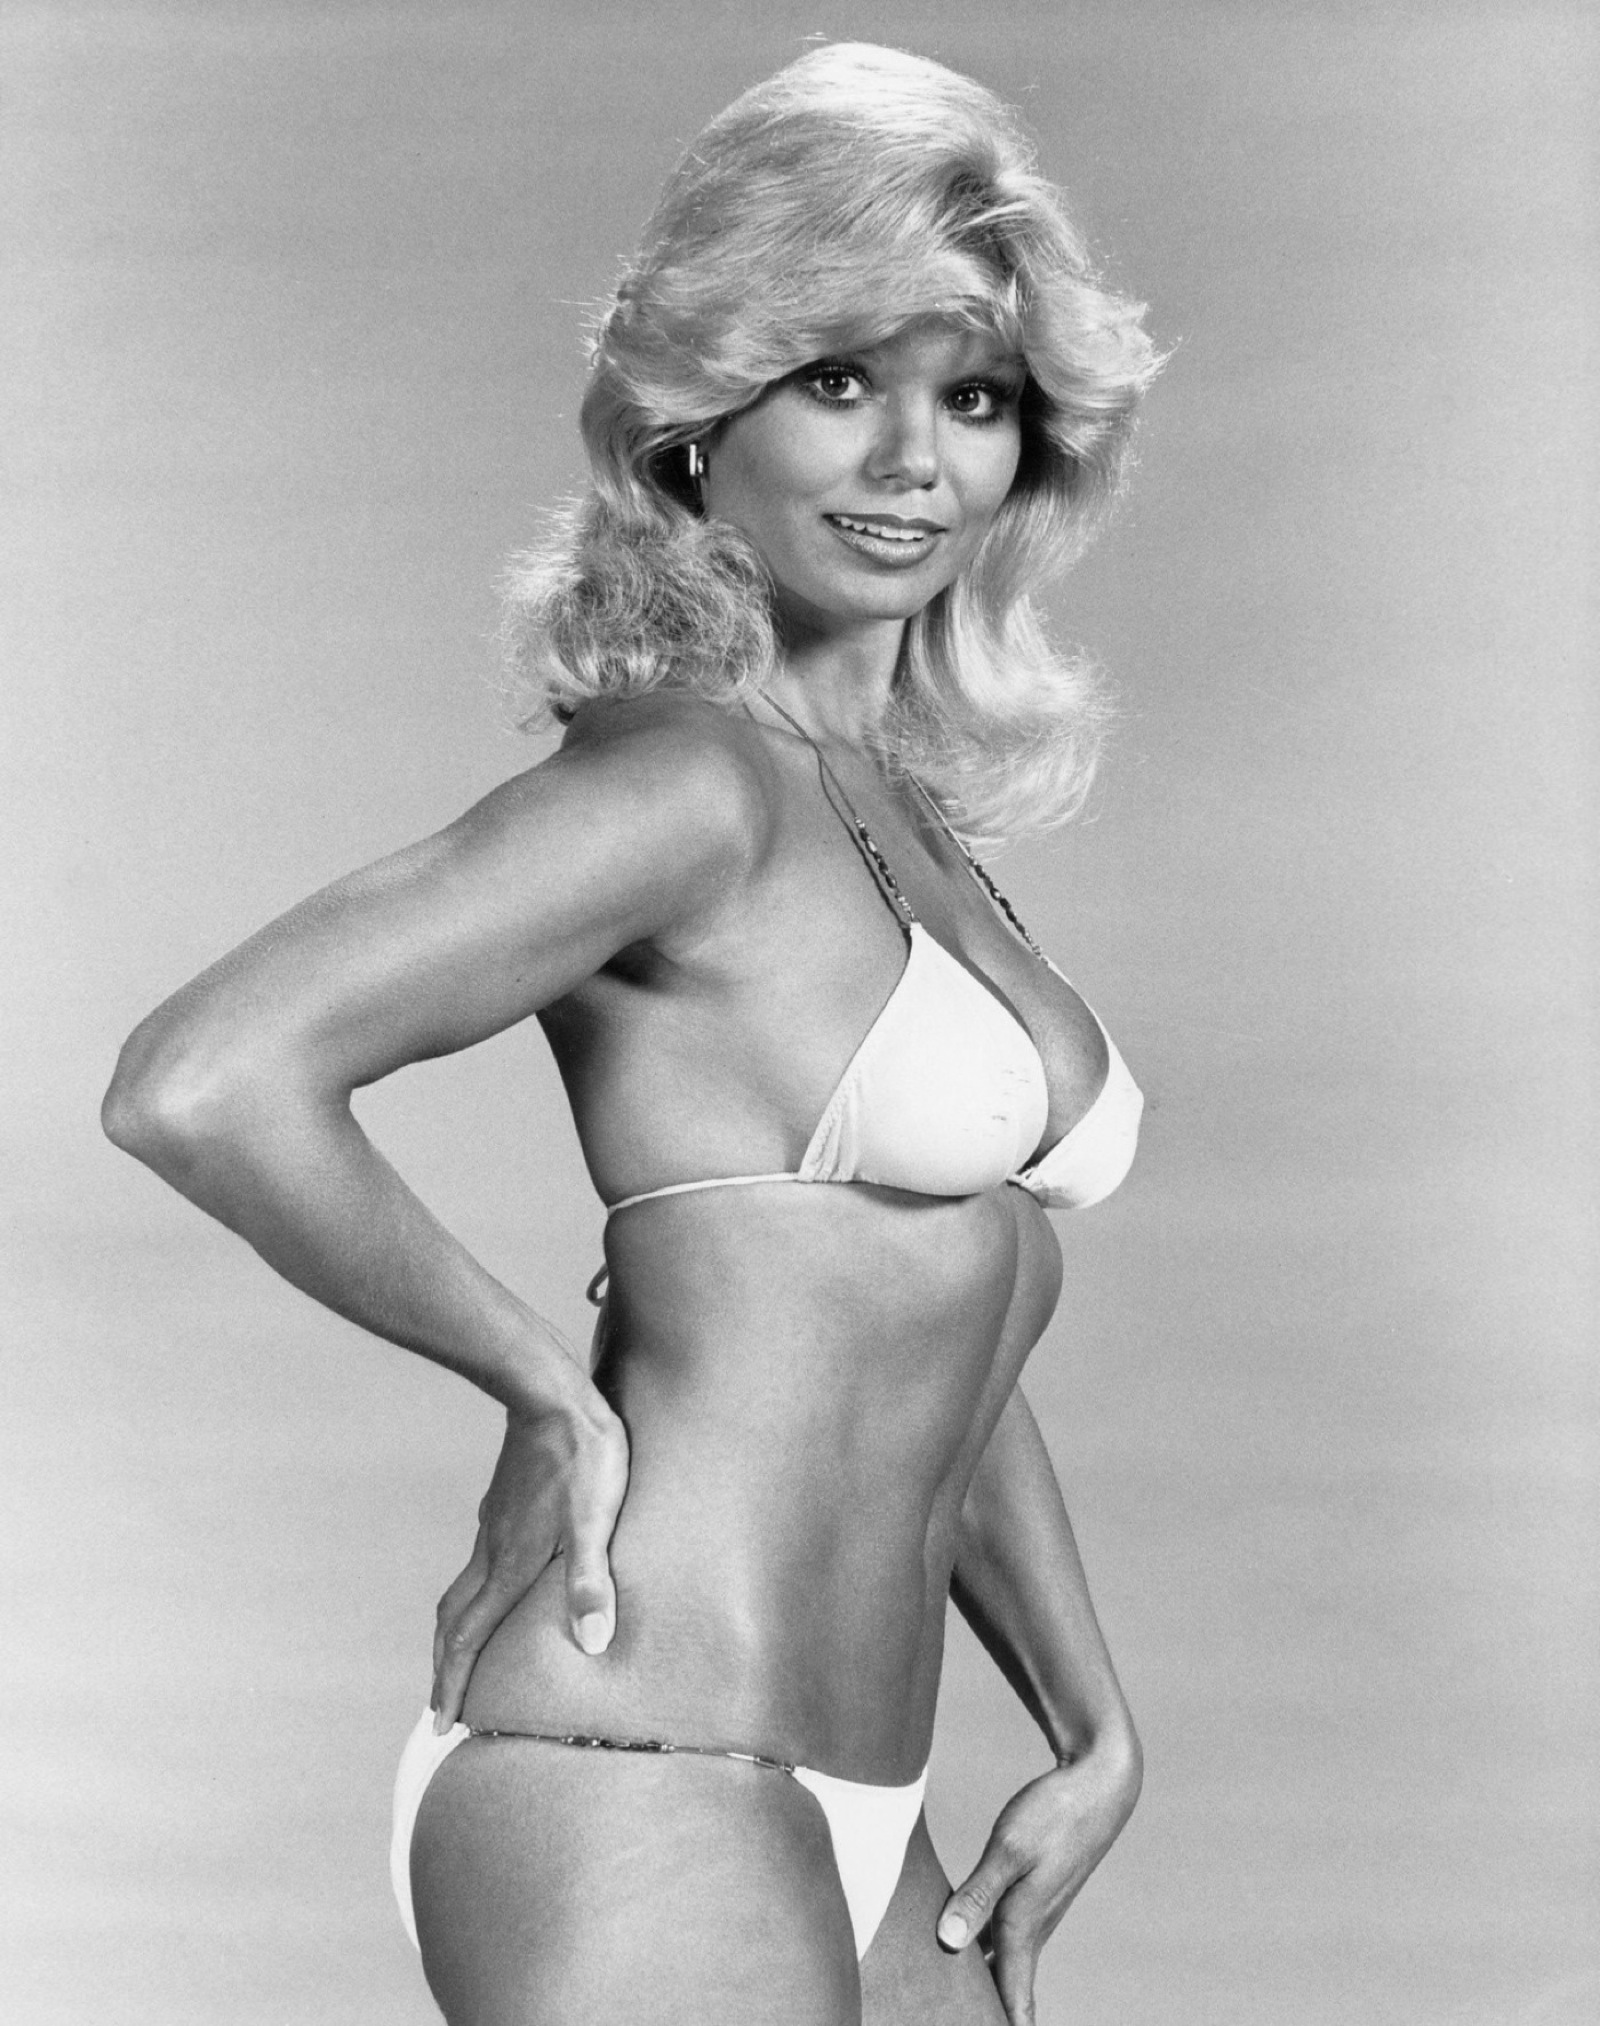 Loni Anderson Nude - Naked Pics and Sex Scenes at